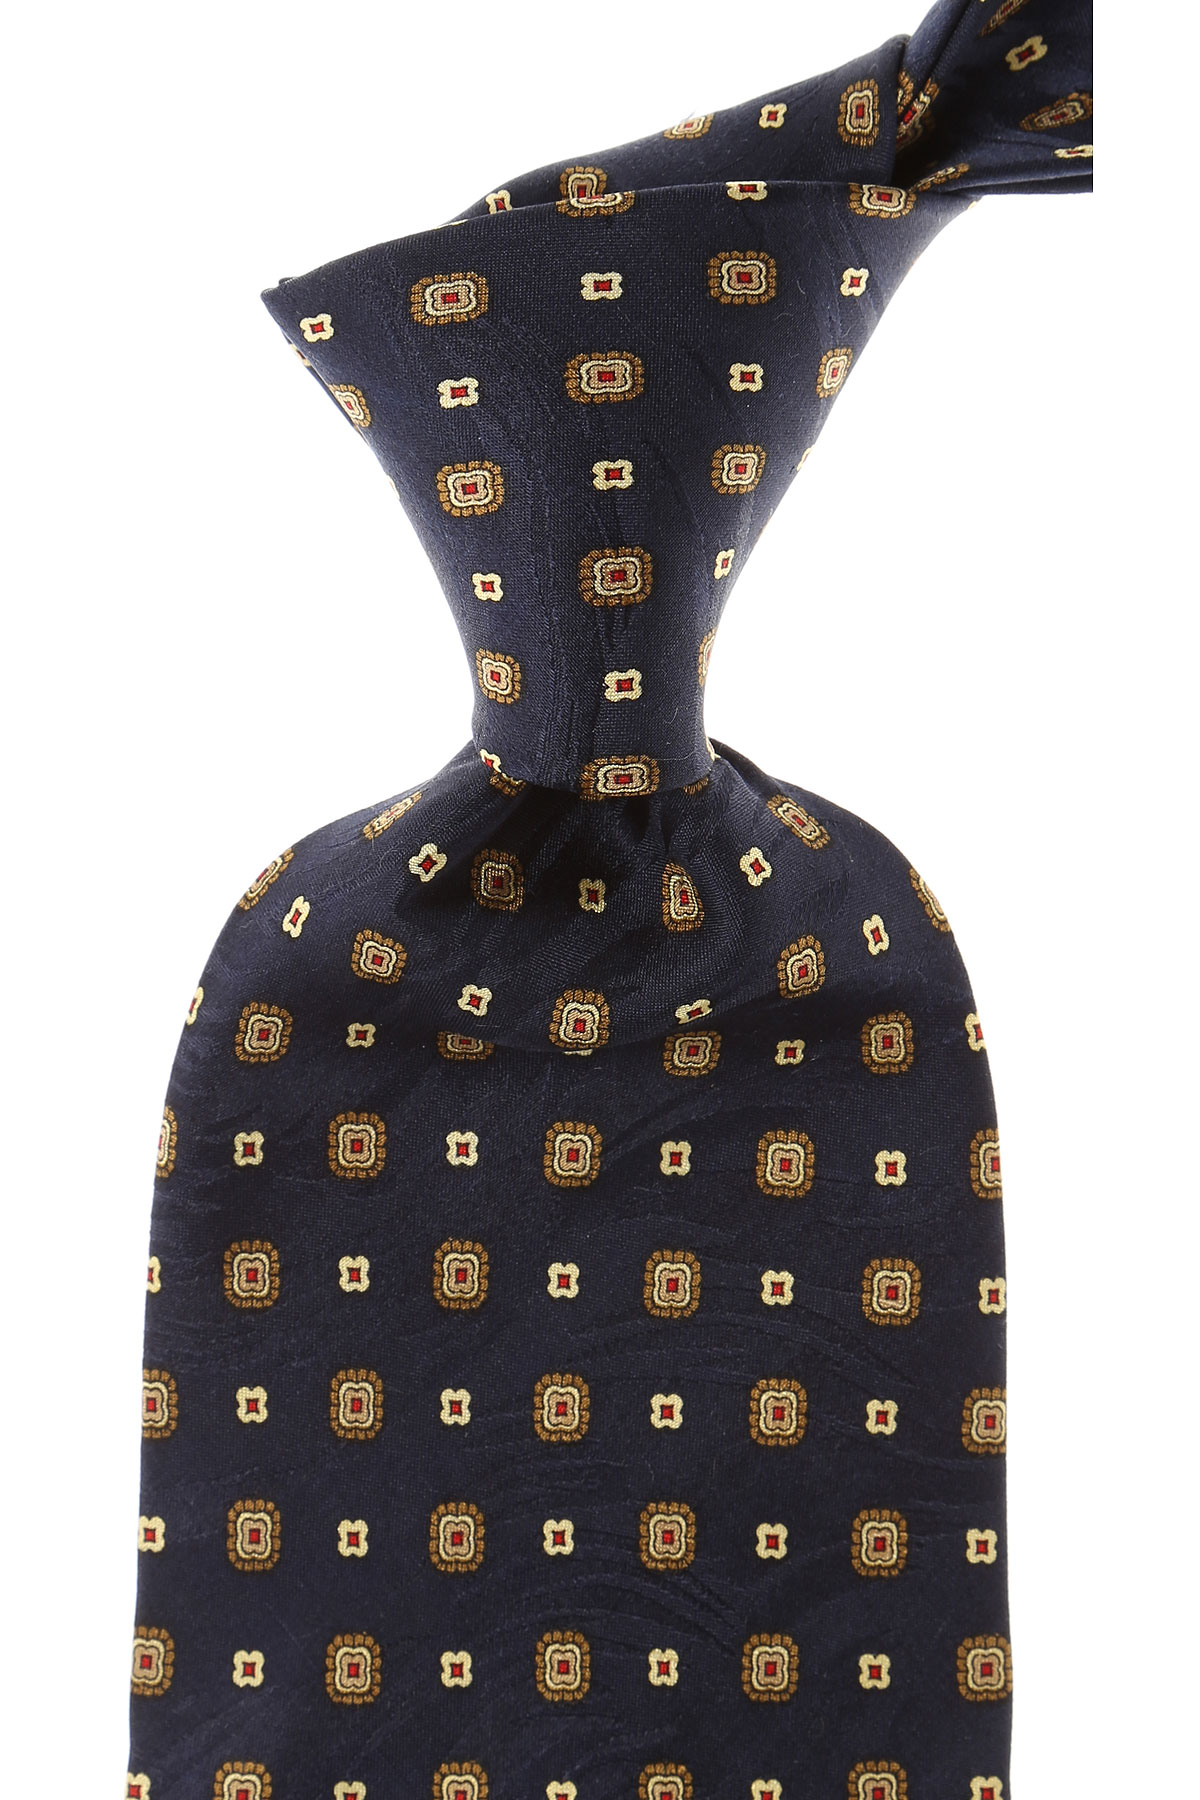 Balmain Ties On Sale, Navy Blue, Silk, 2019